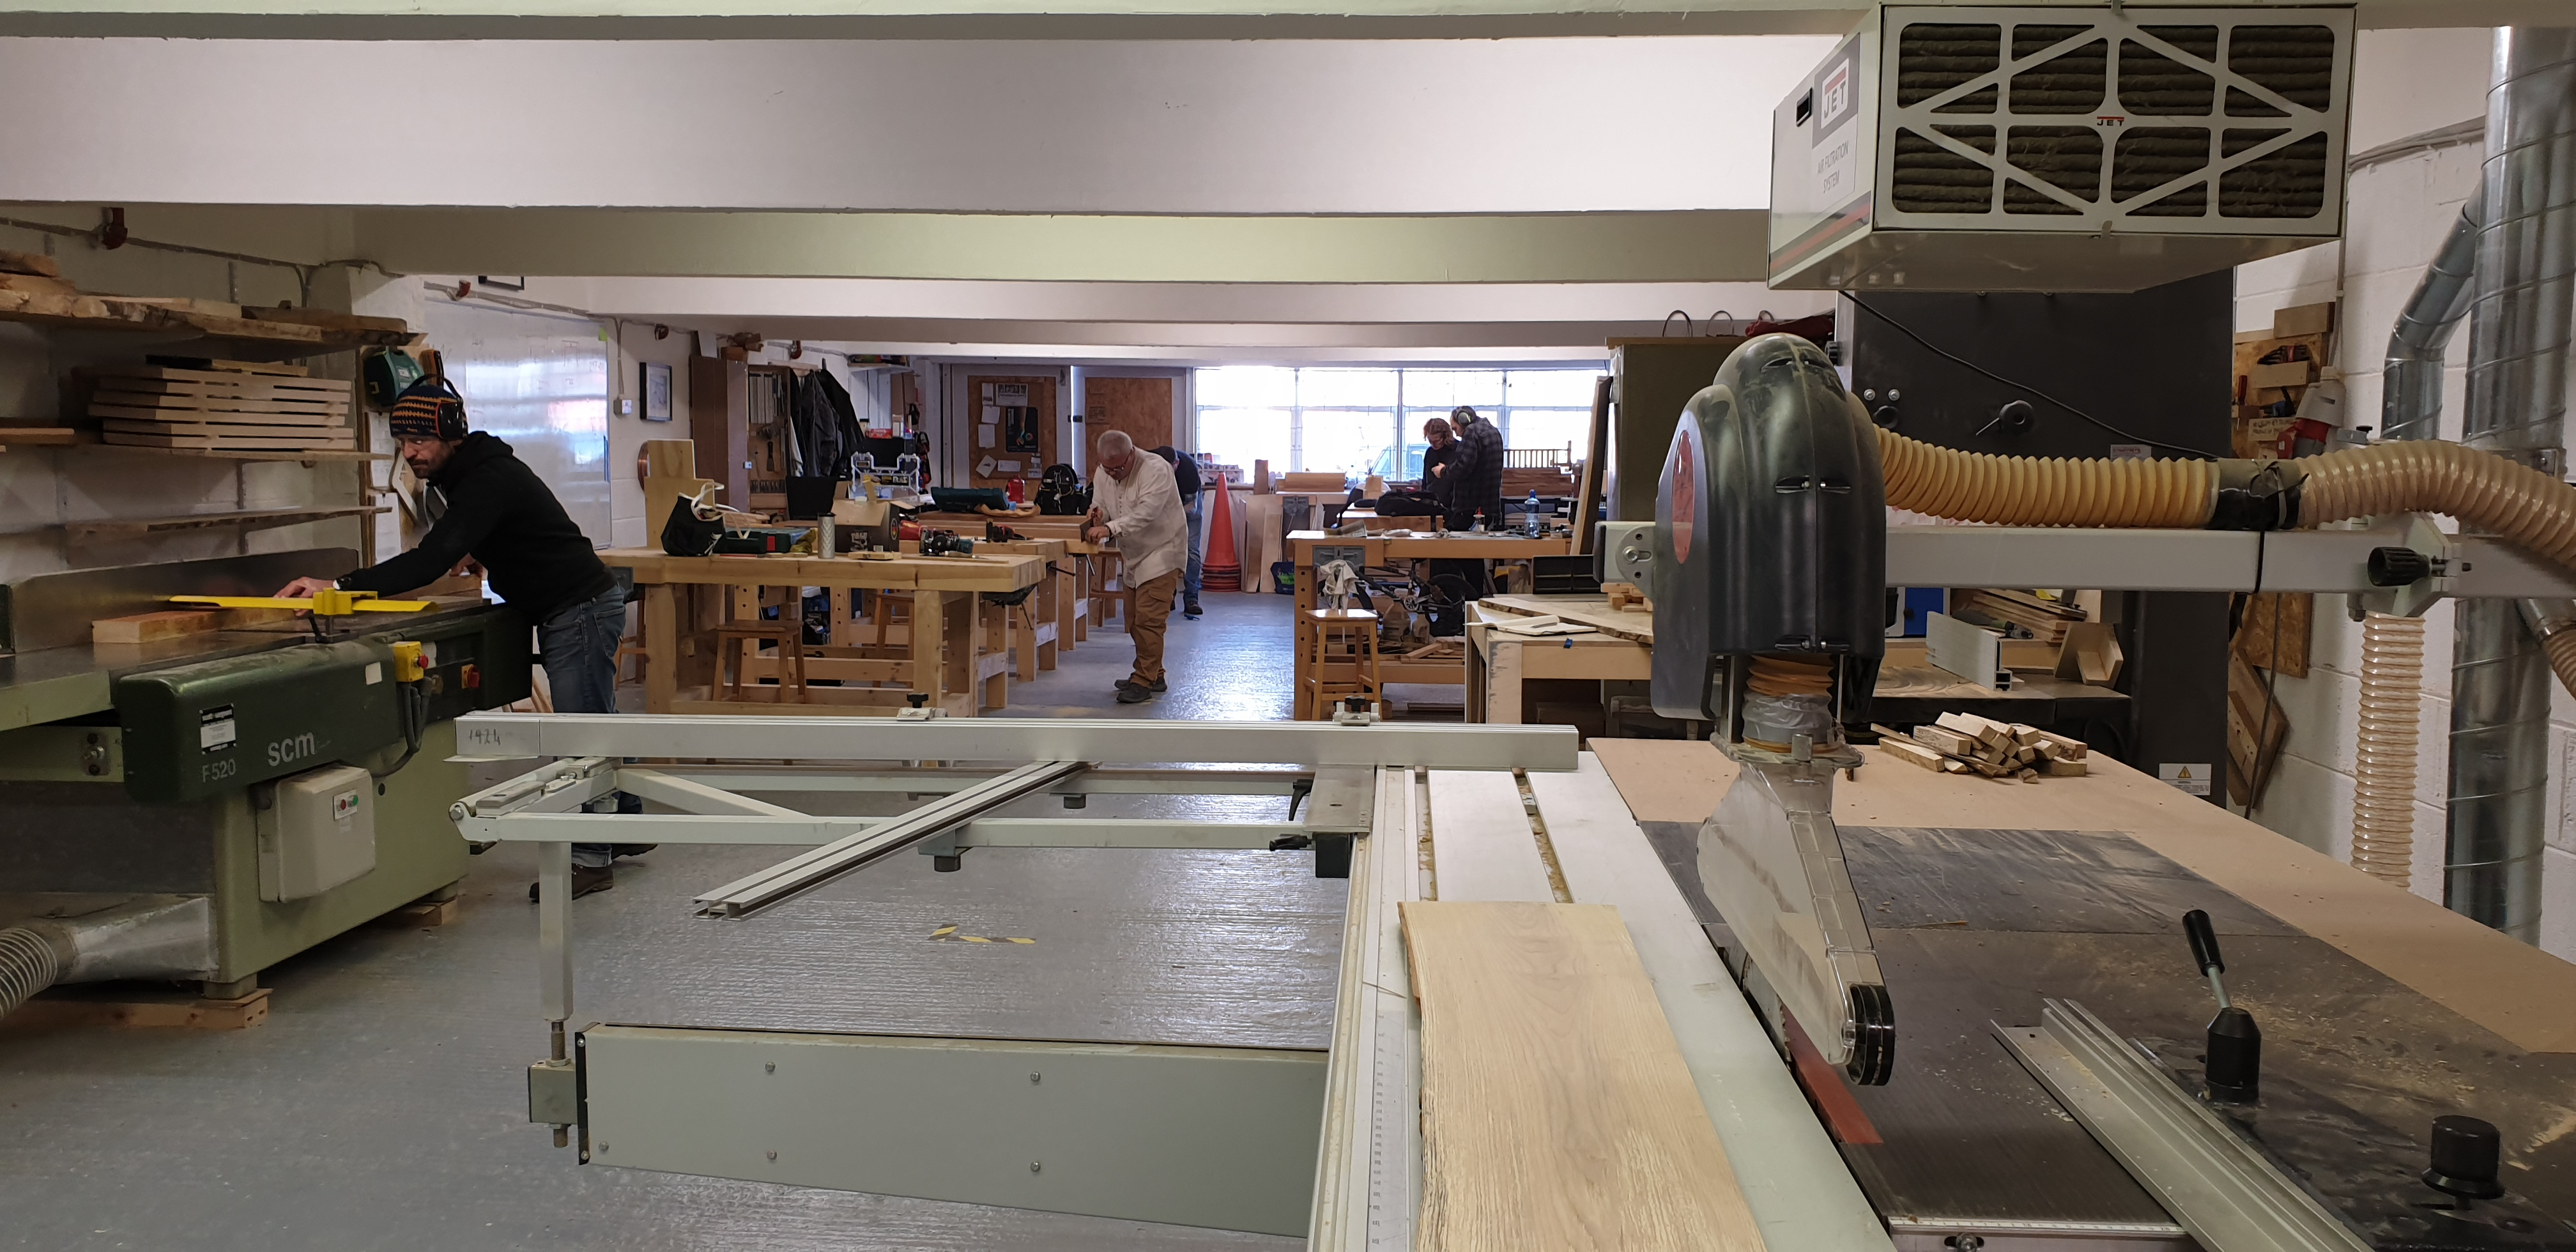 New opportunity for Craft Makers, Artists or Designers who work with Wood